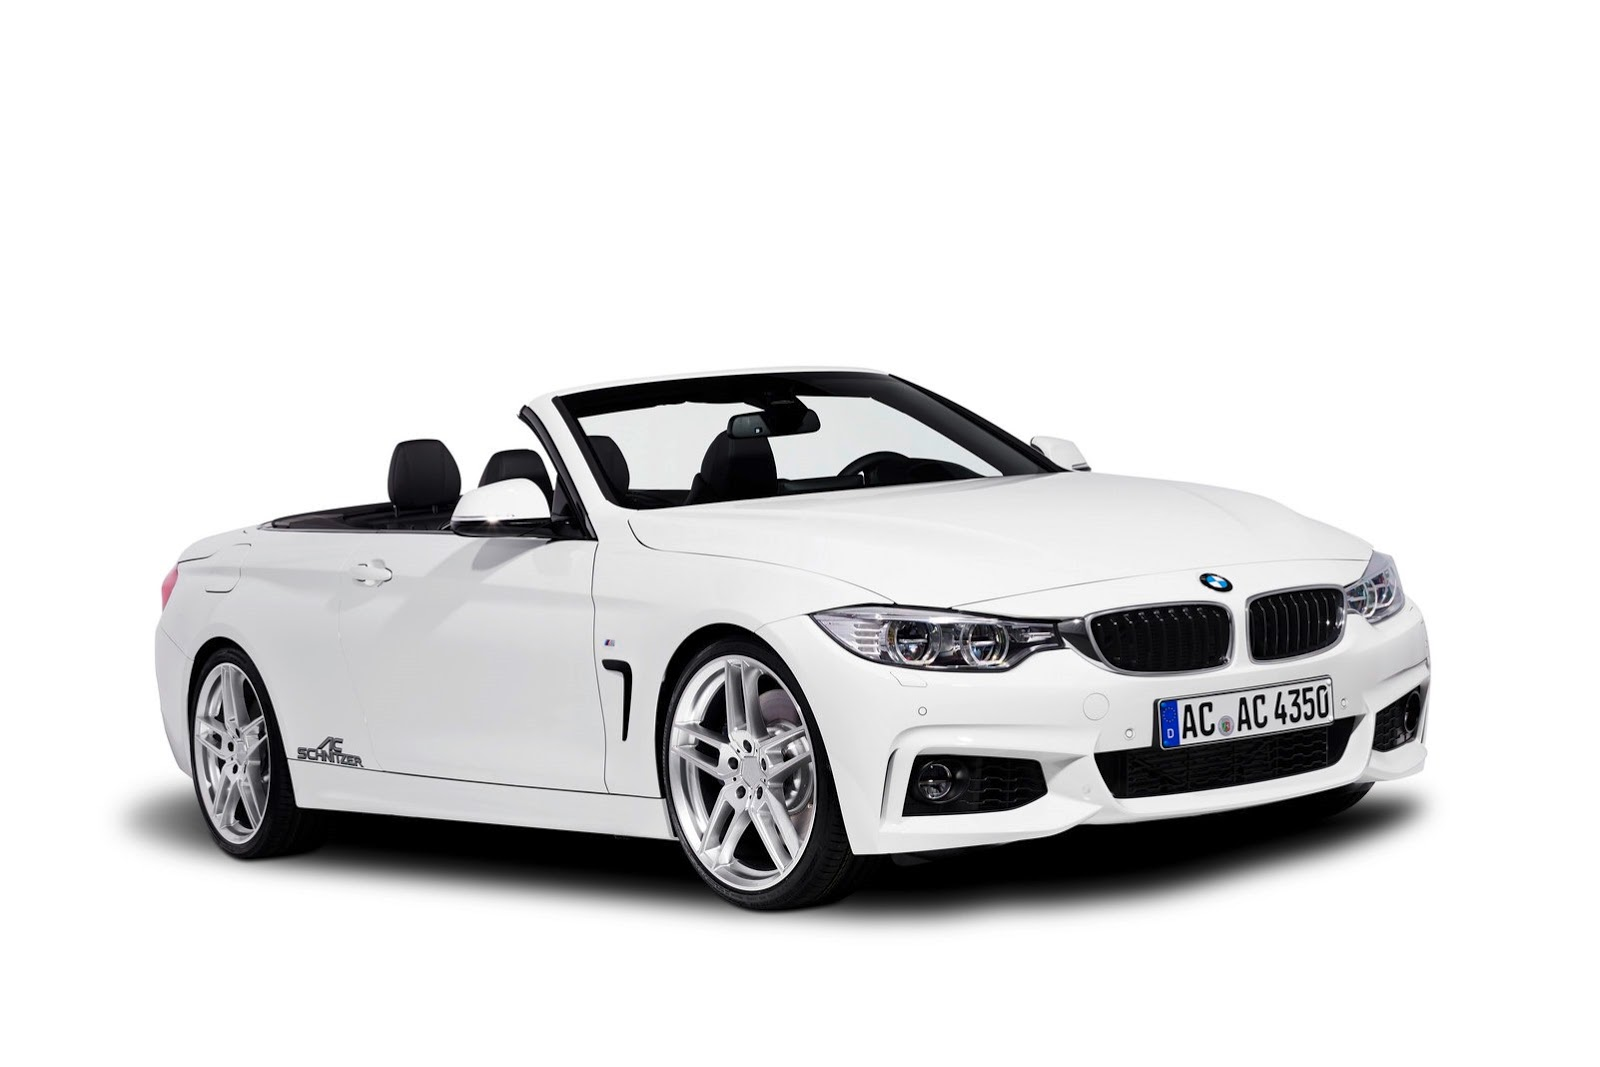 official bmw 4 series convertible upgrades by ac schnitzer gtspirit. Black Bedroom Furniture Sets. Home Design Ideas